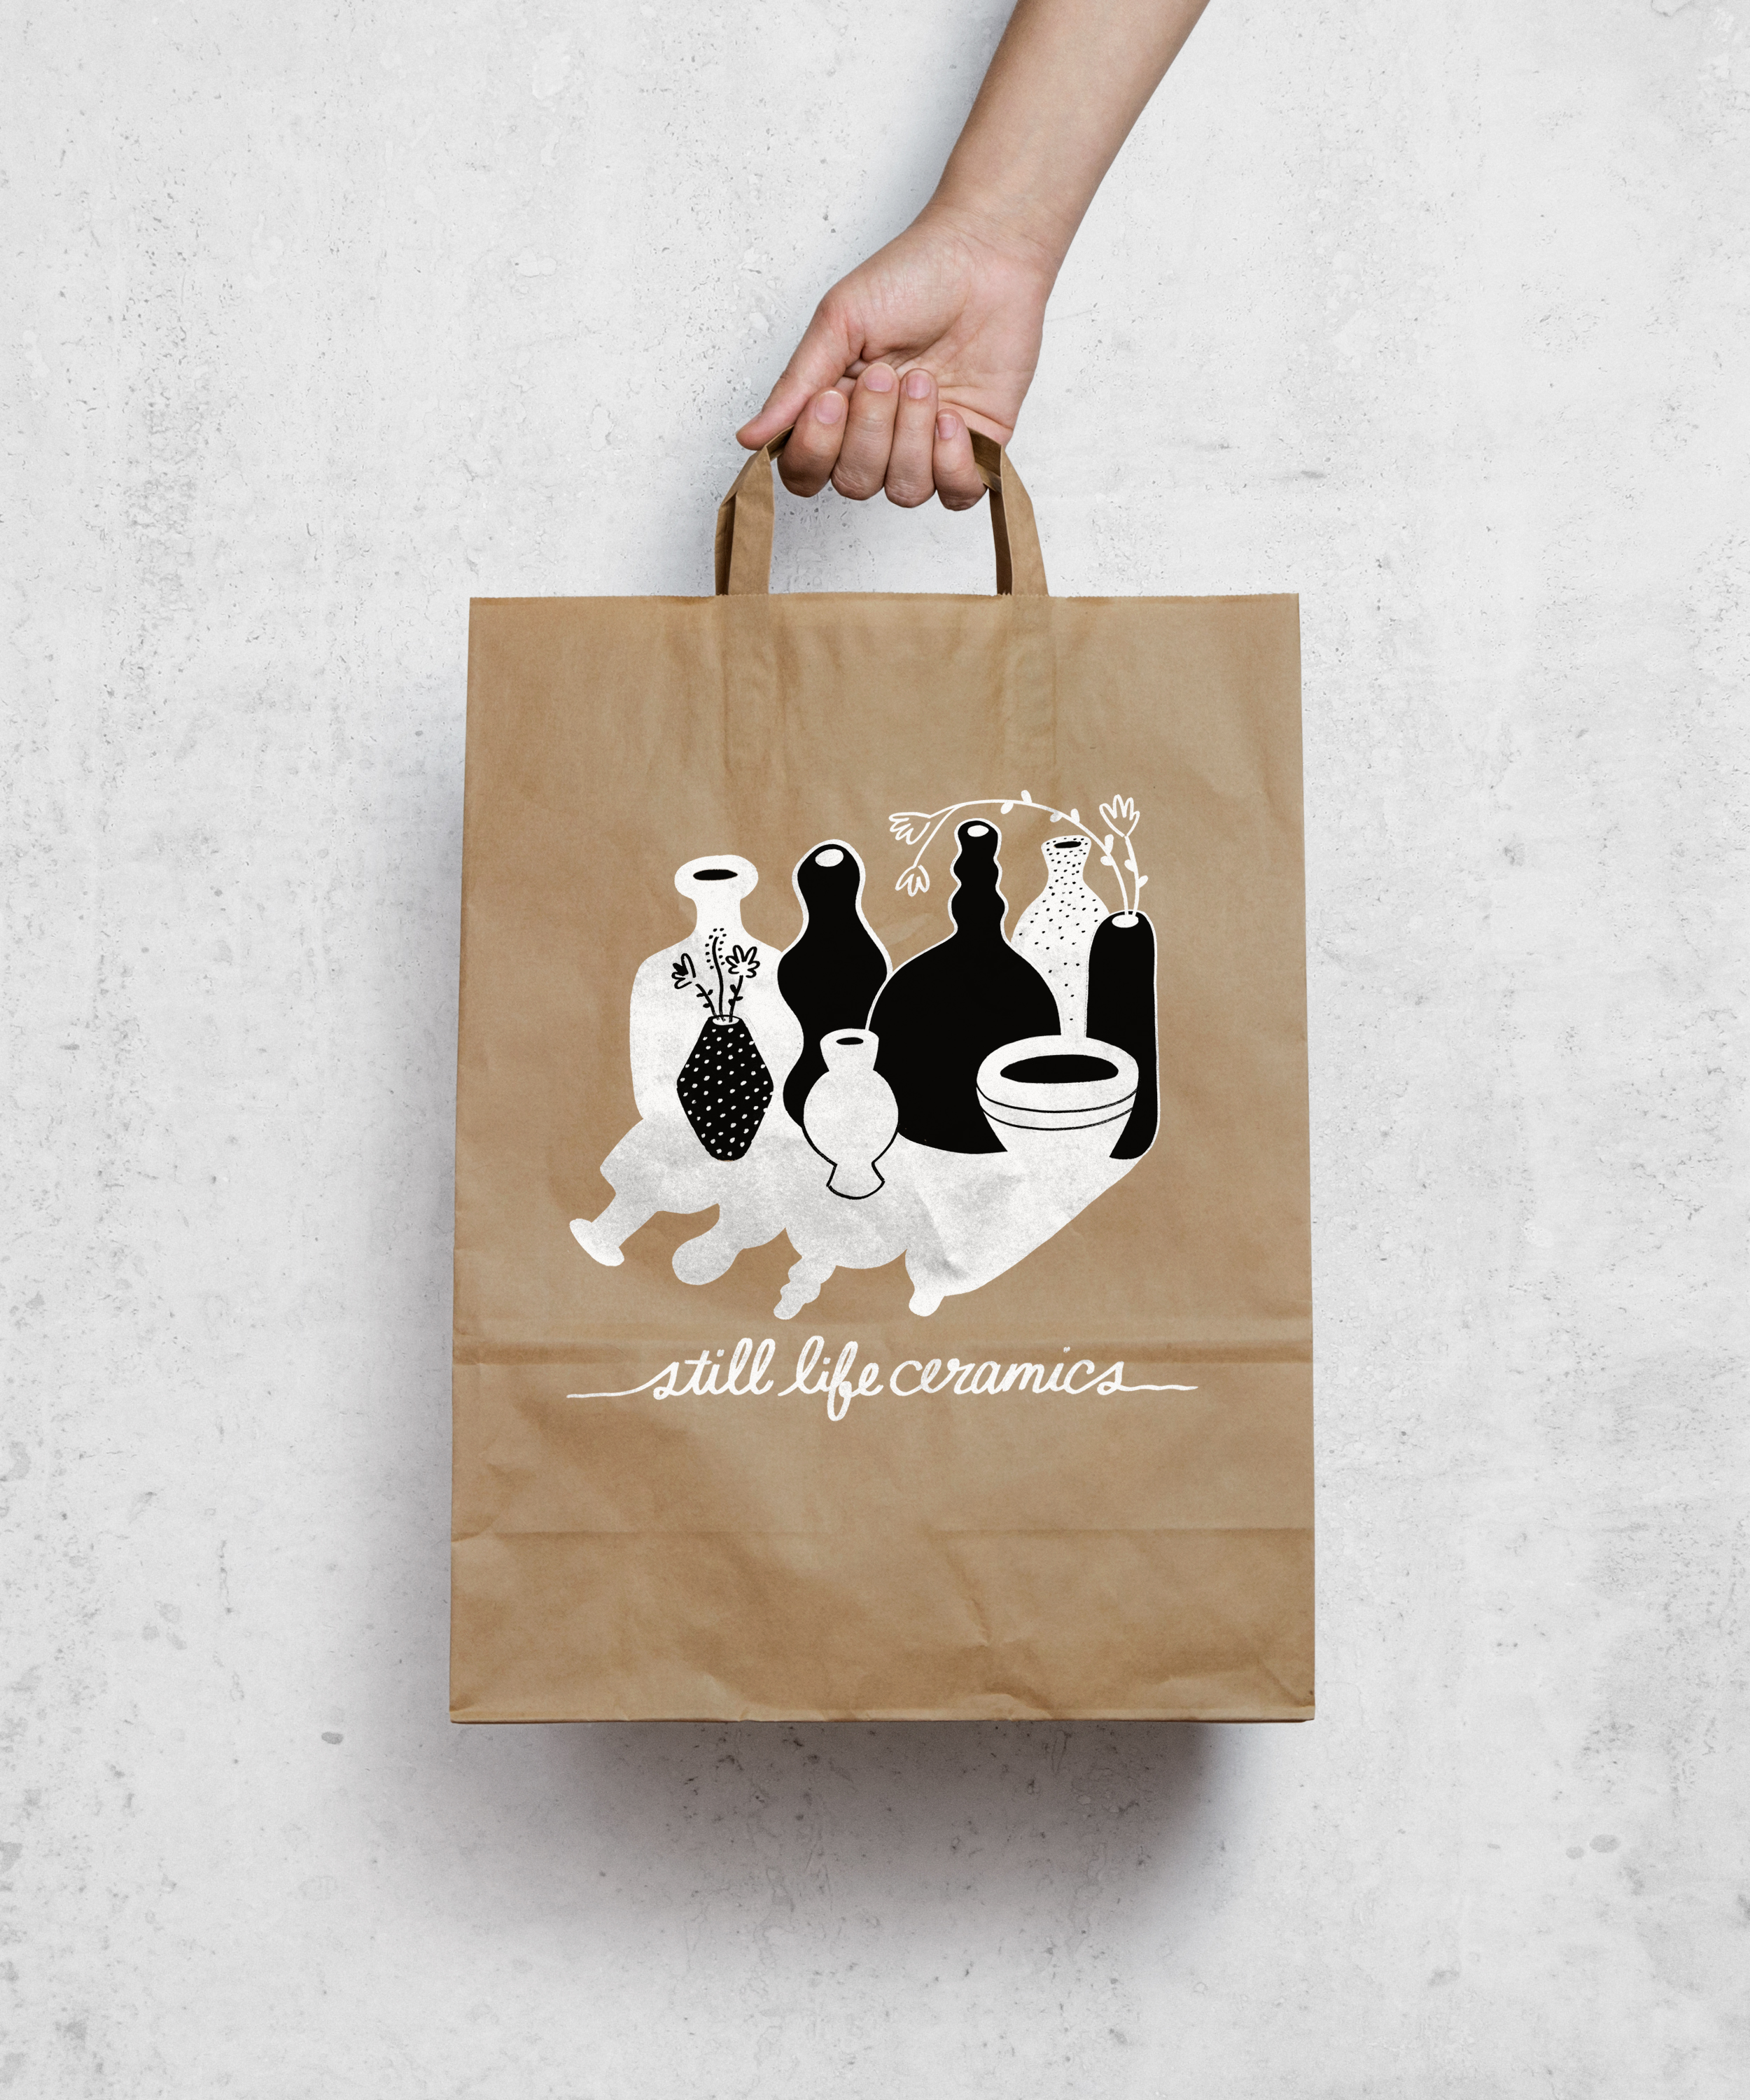 shopping bag concept for Still Life Ceramics